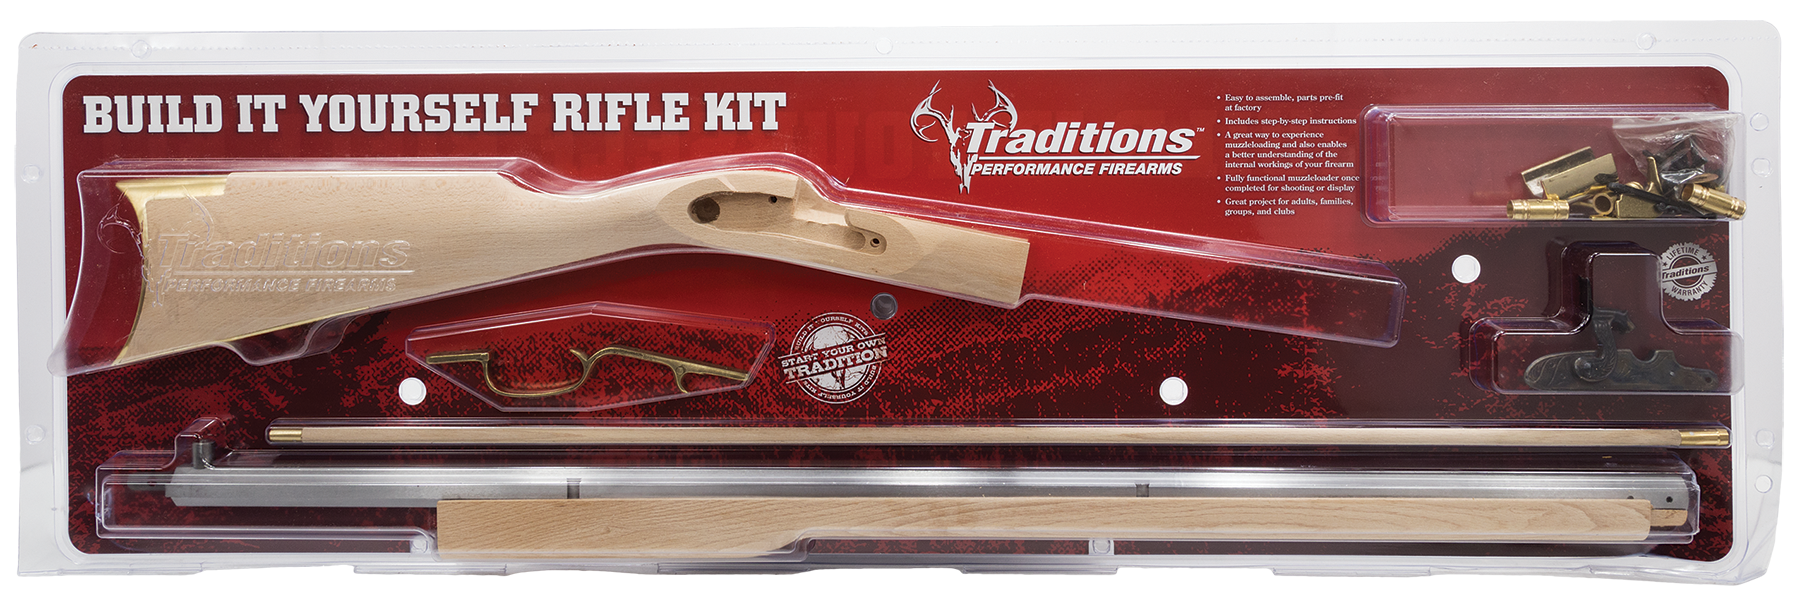 Trad KRC52206 Kentucky Rifle Kit Clam 50BlkPwdr 33.5